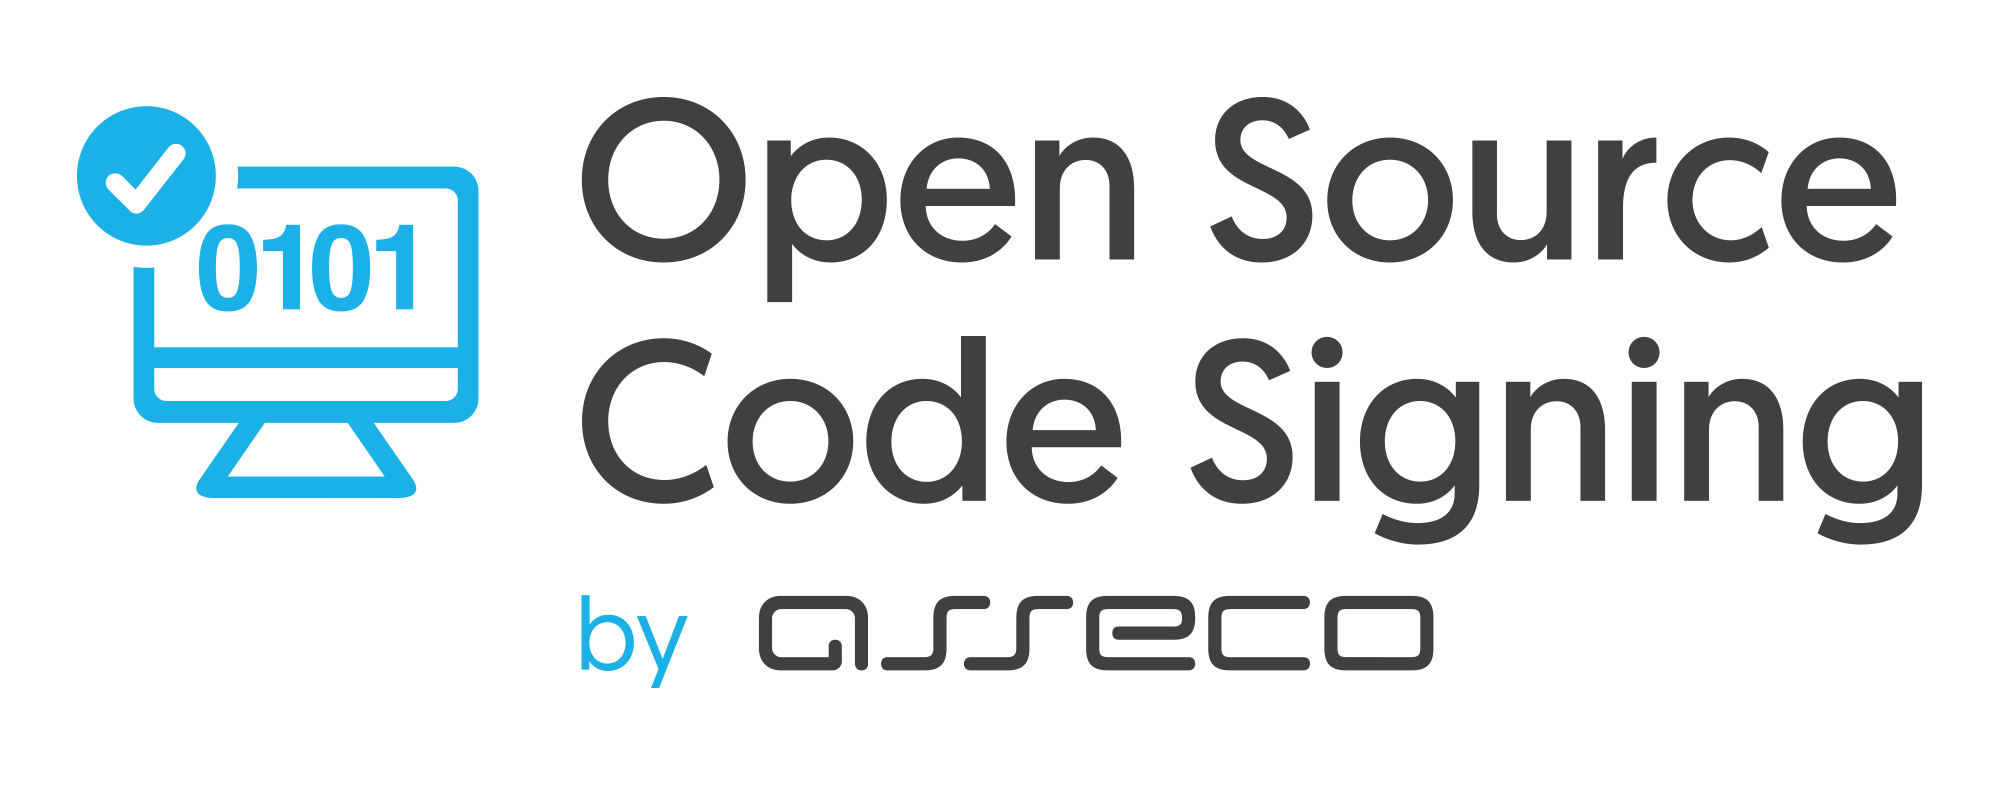 Open Source Code Signing